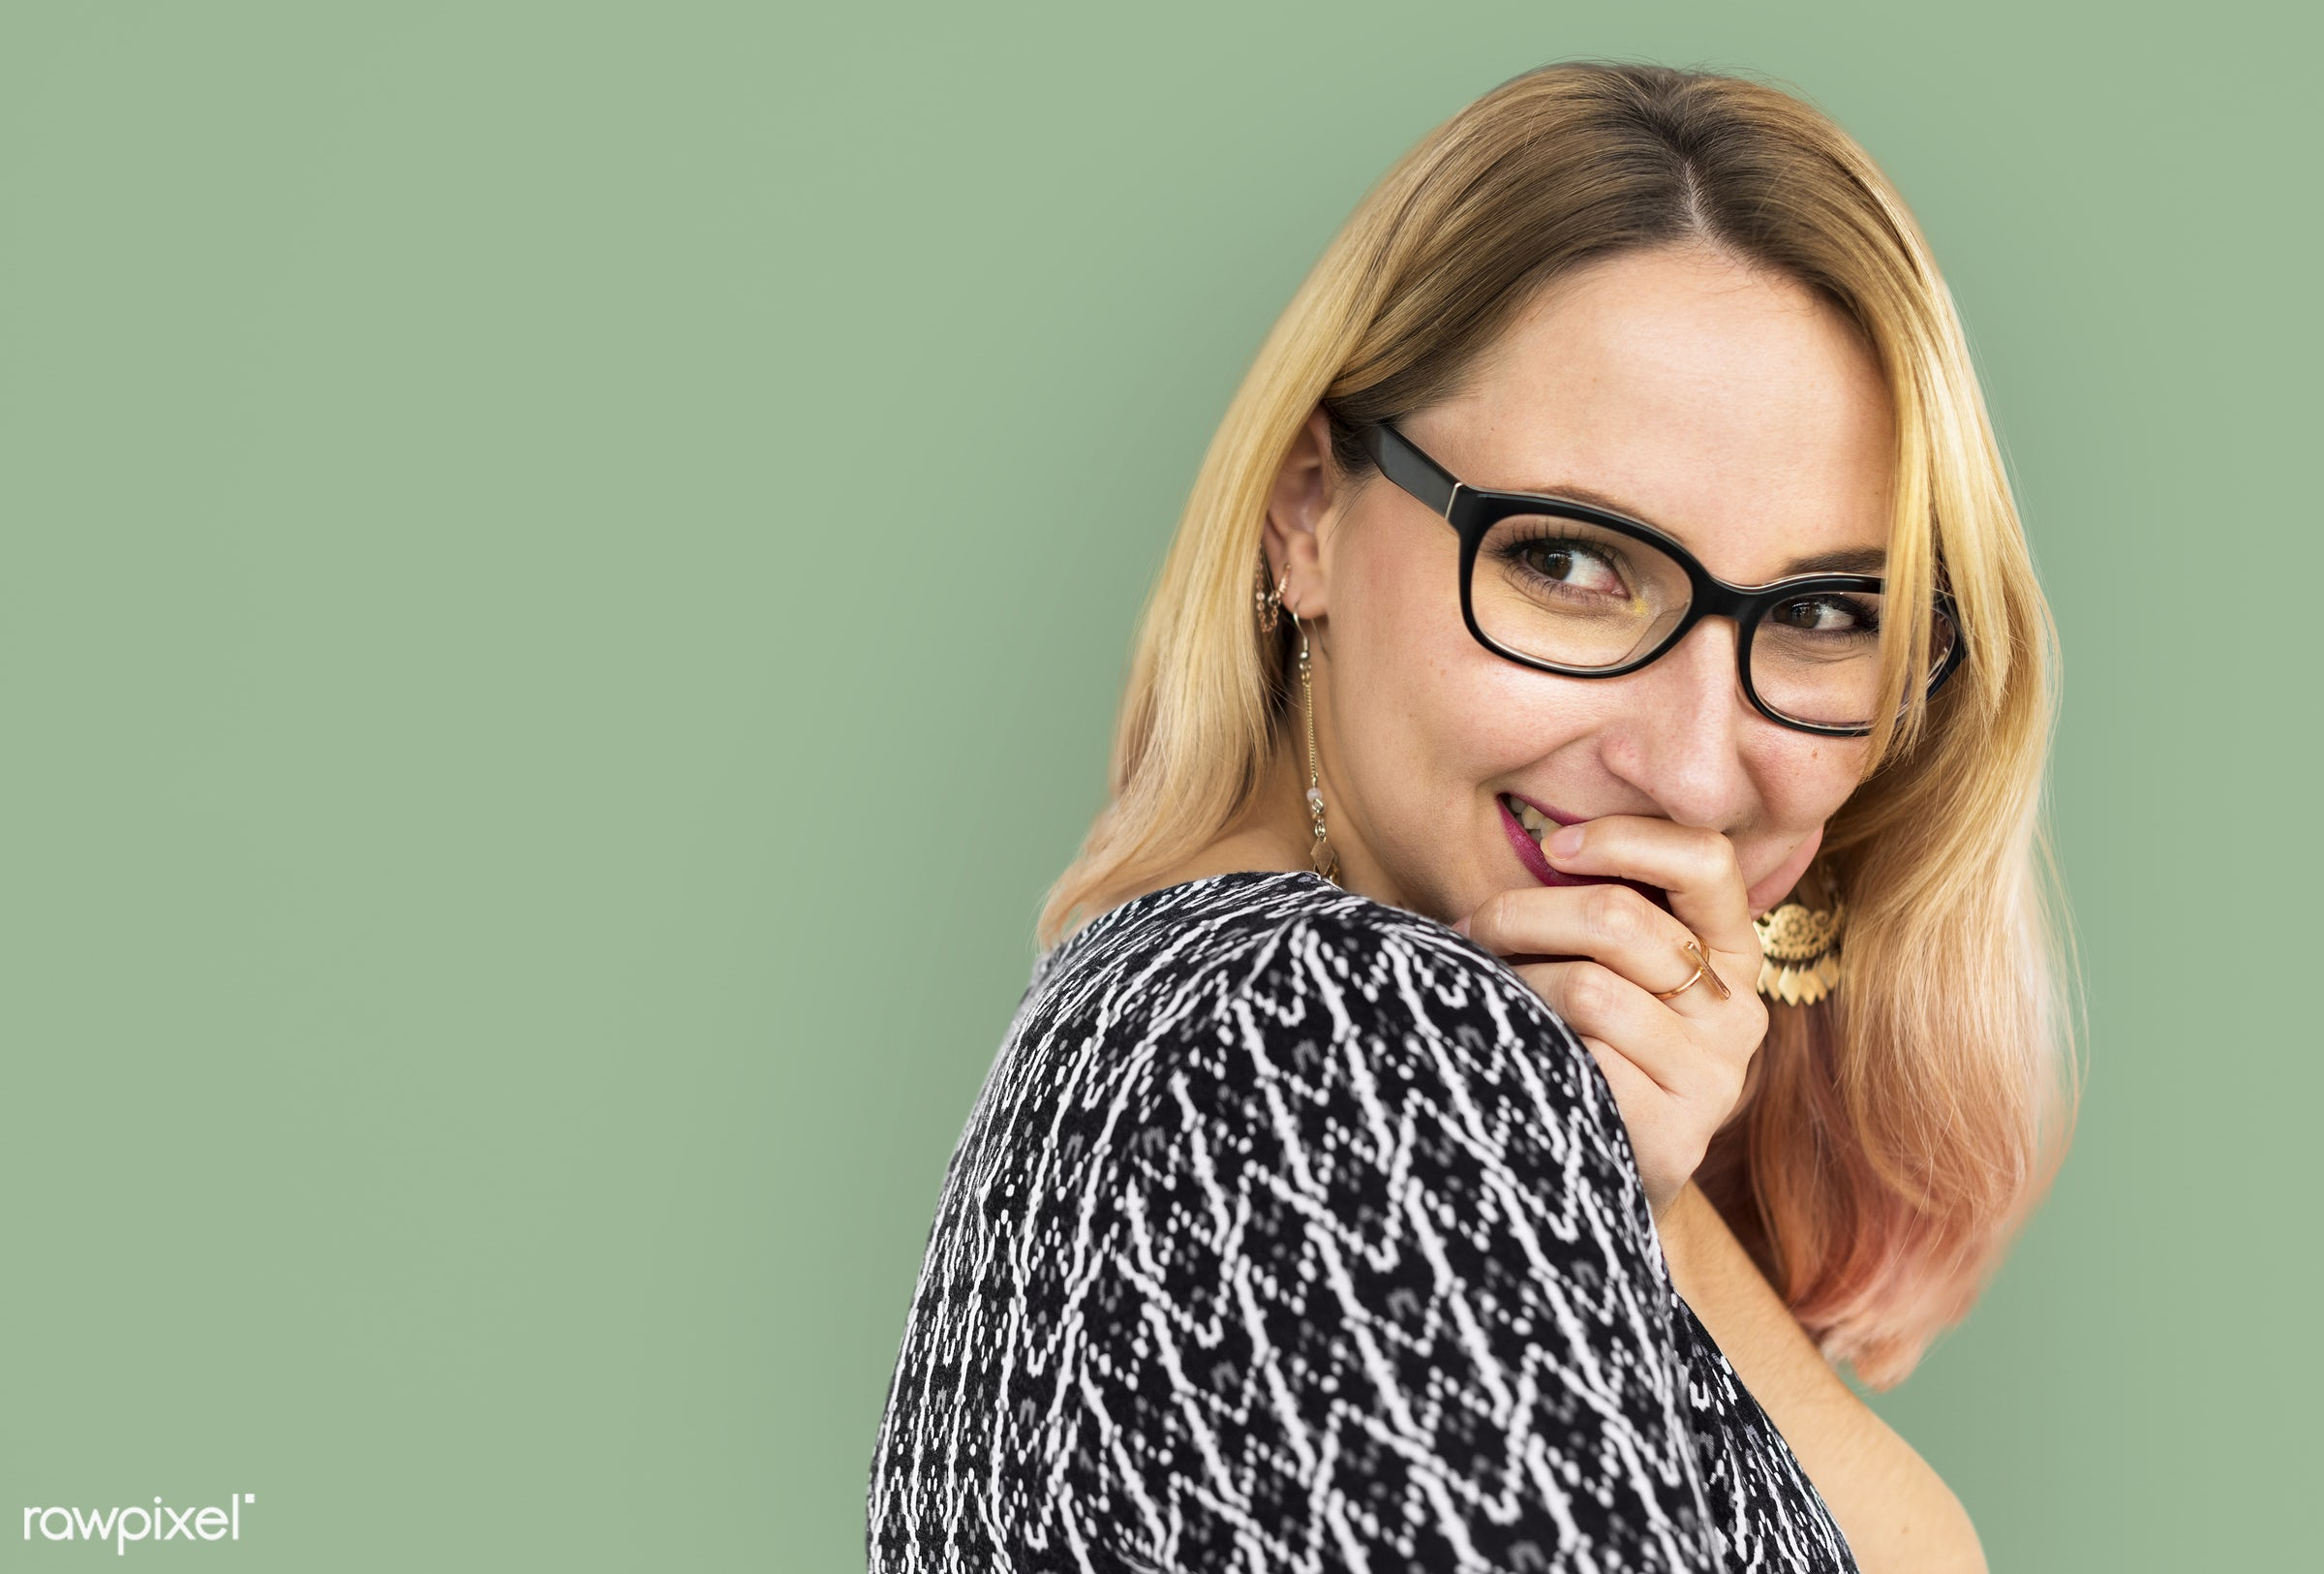 expression, studio, pastel, face, person, glasses, one, blond, cute, pretty, people, modern, laughing, girl, happy,...